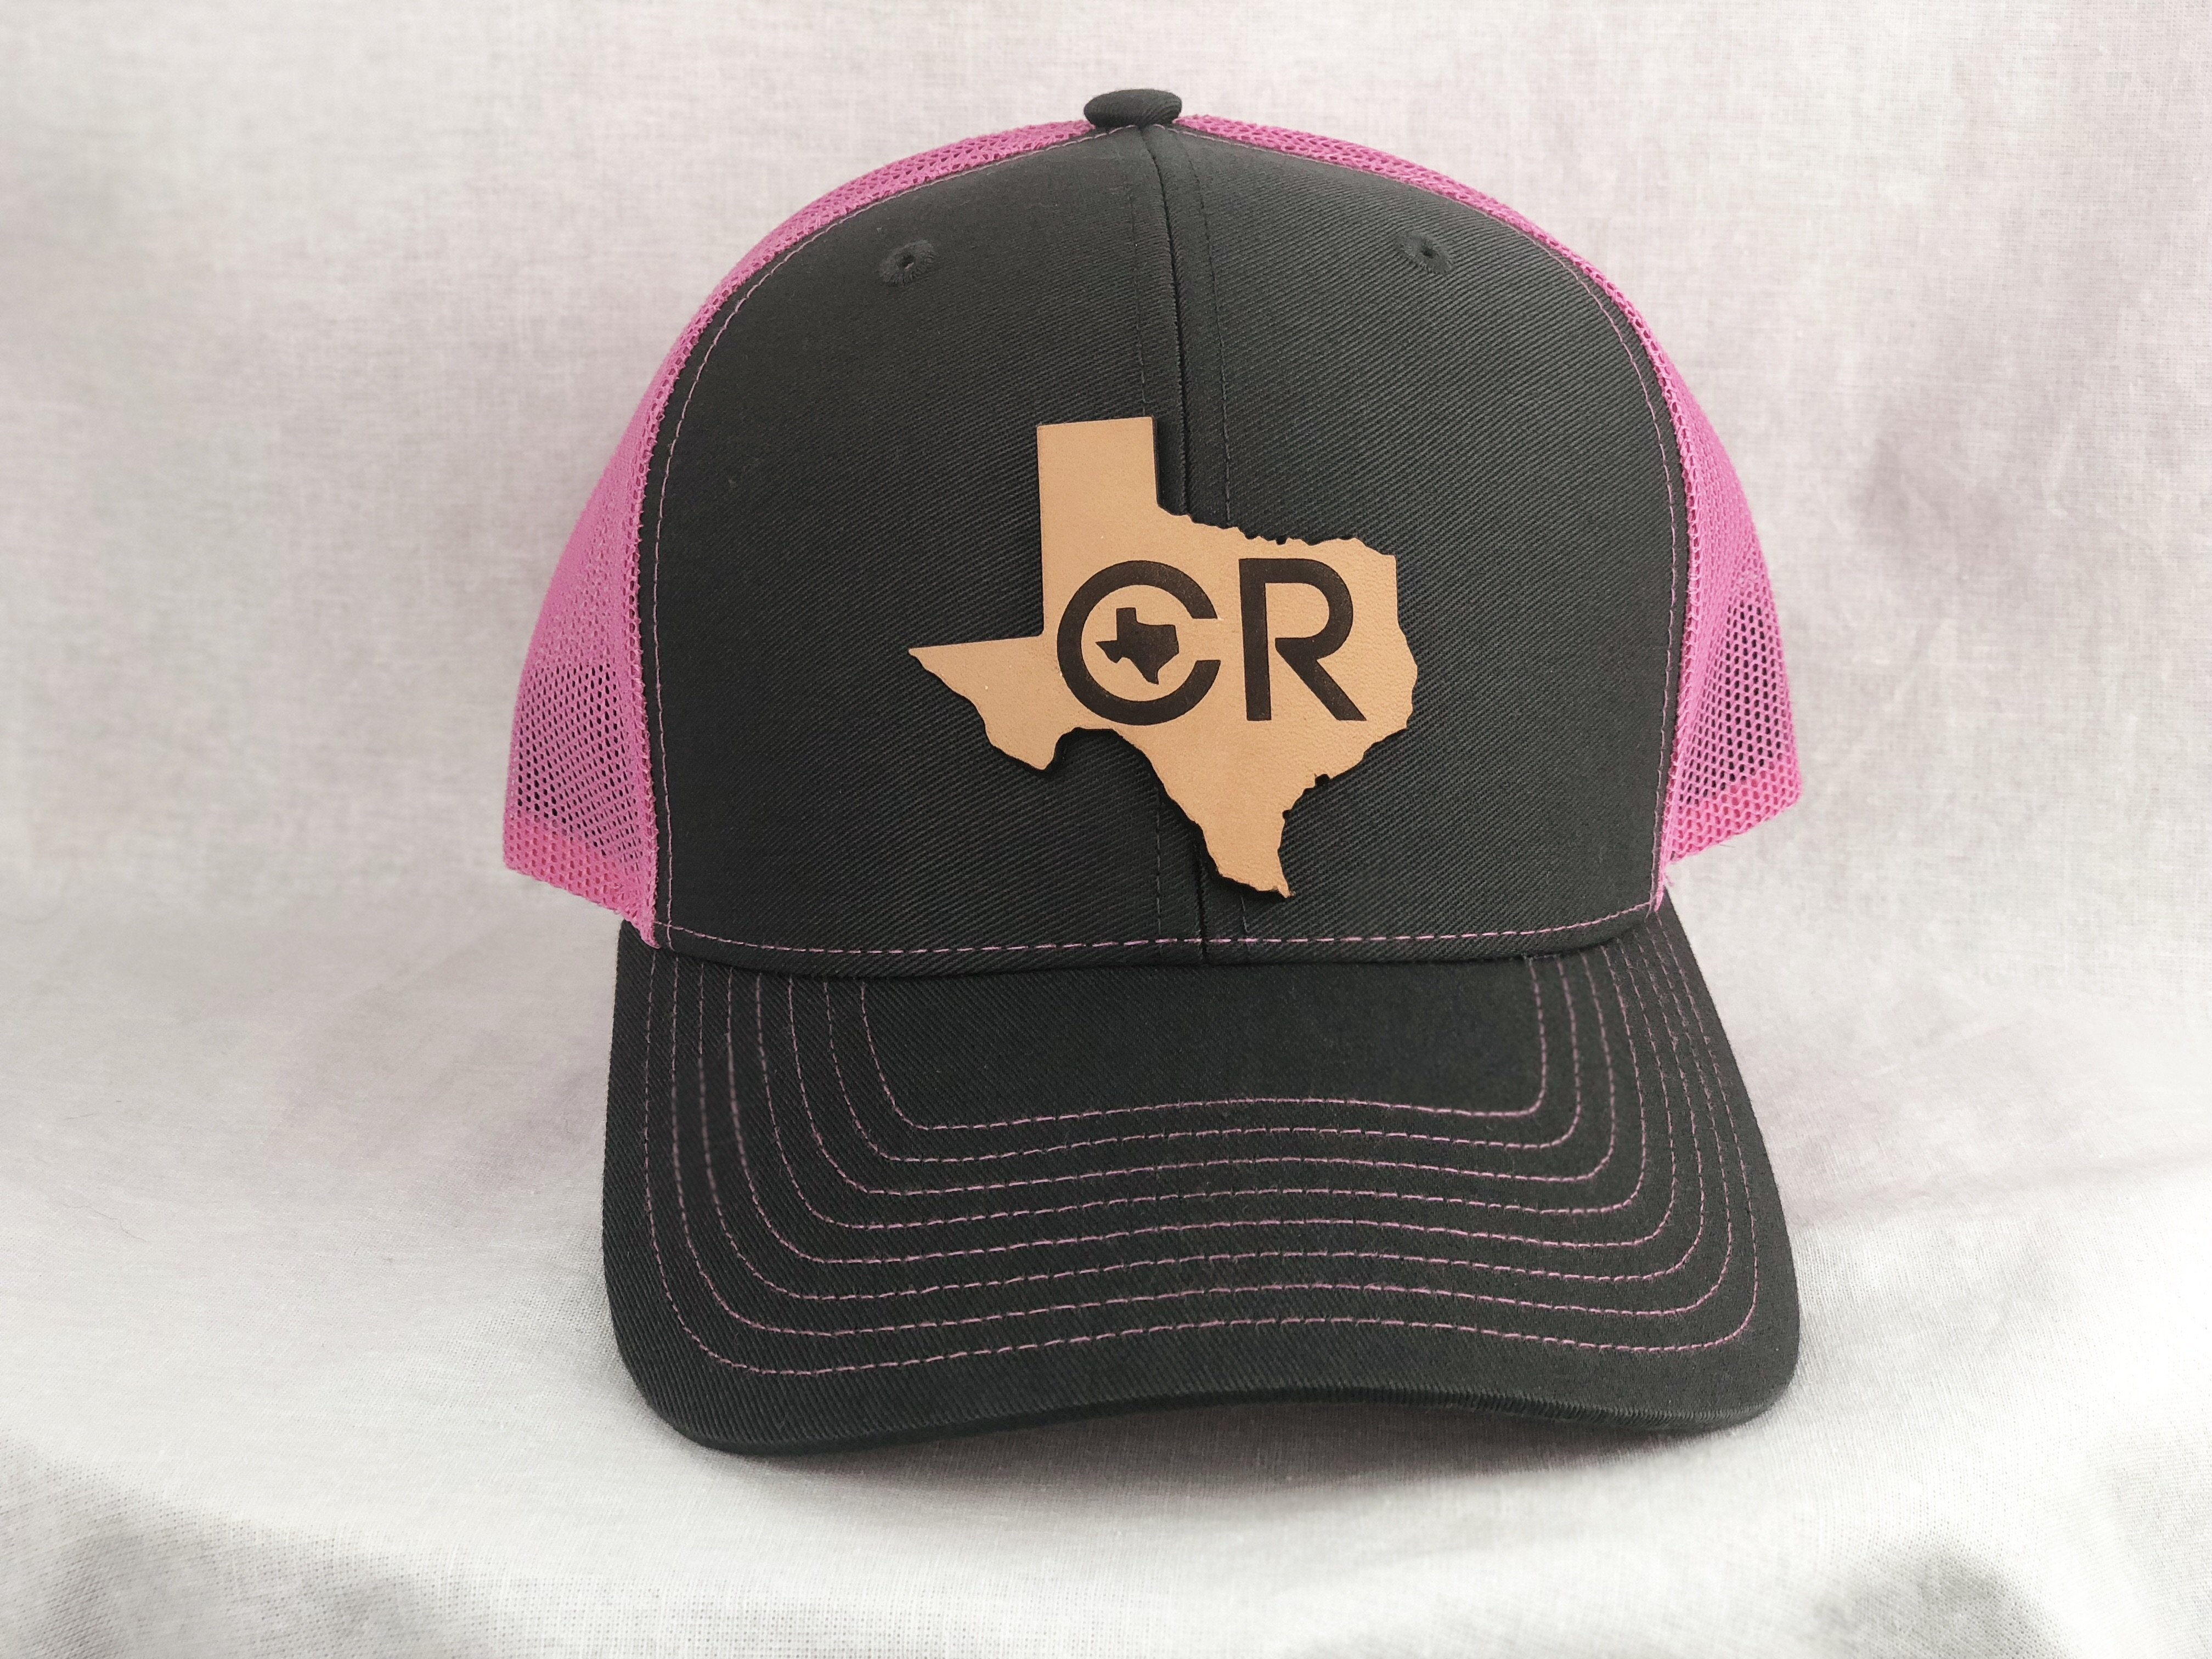 Buy CR Texas Leather Tag Pink and Gray Hat at CR RanchWear for only ...